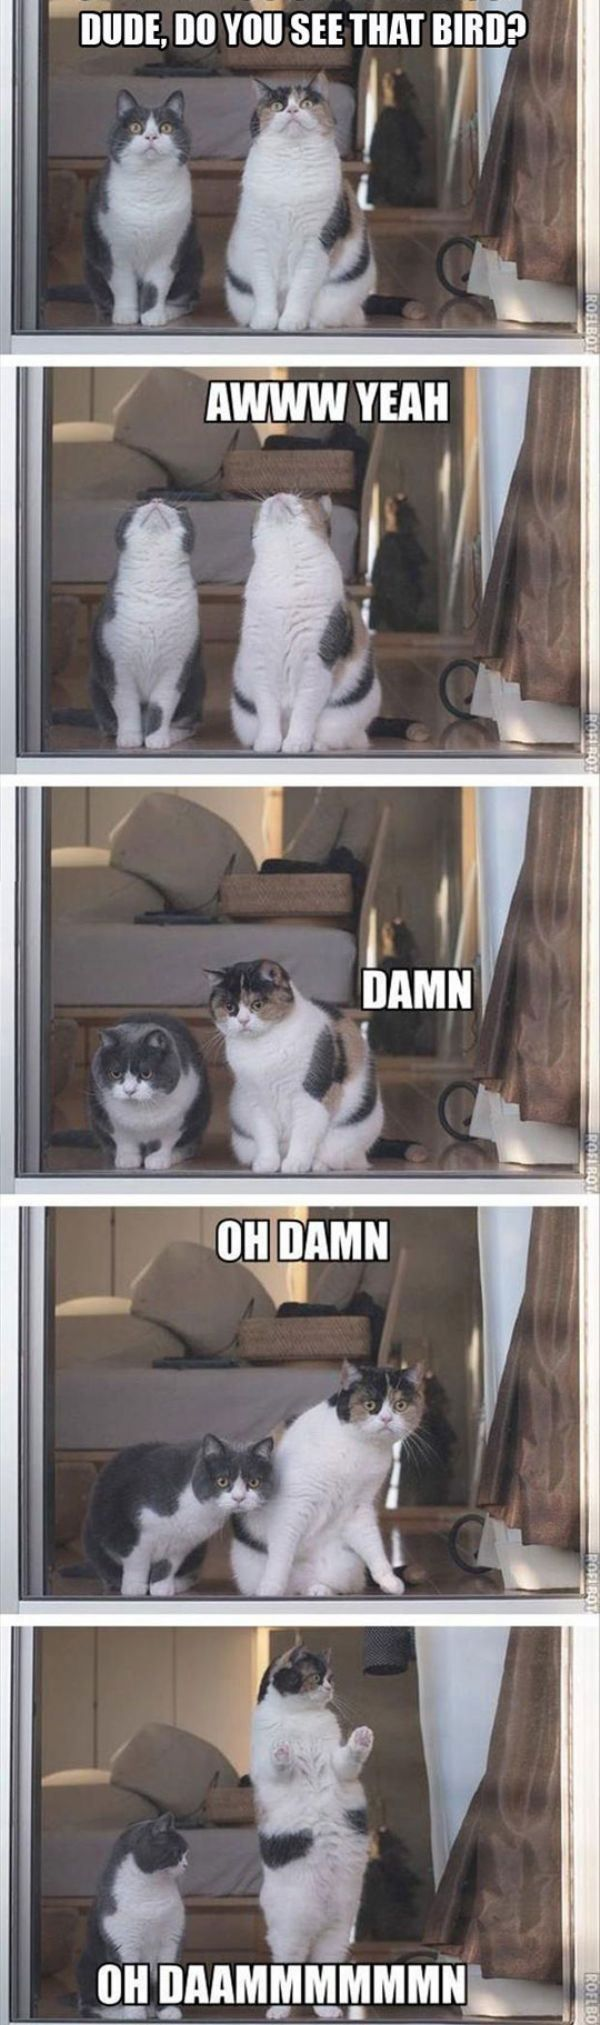 Dude did you see That Bird #Funny #cat #animal - Visit http://dailyhaha.com/pictures.htm for daily funny pictures.